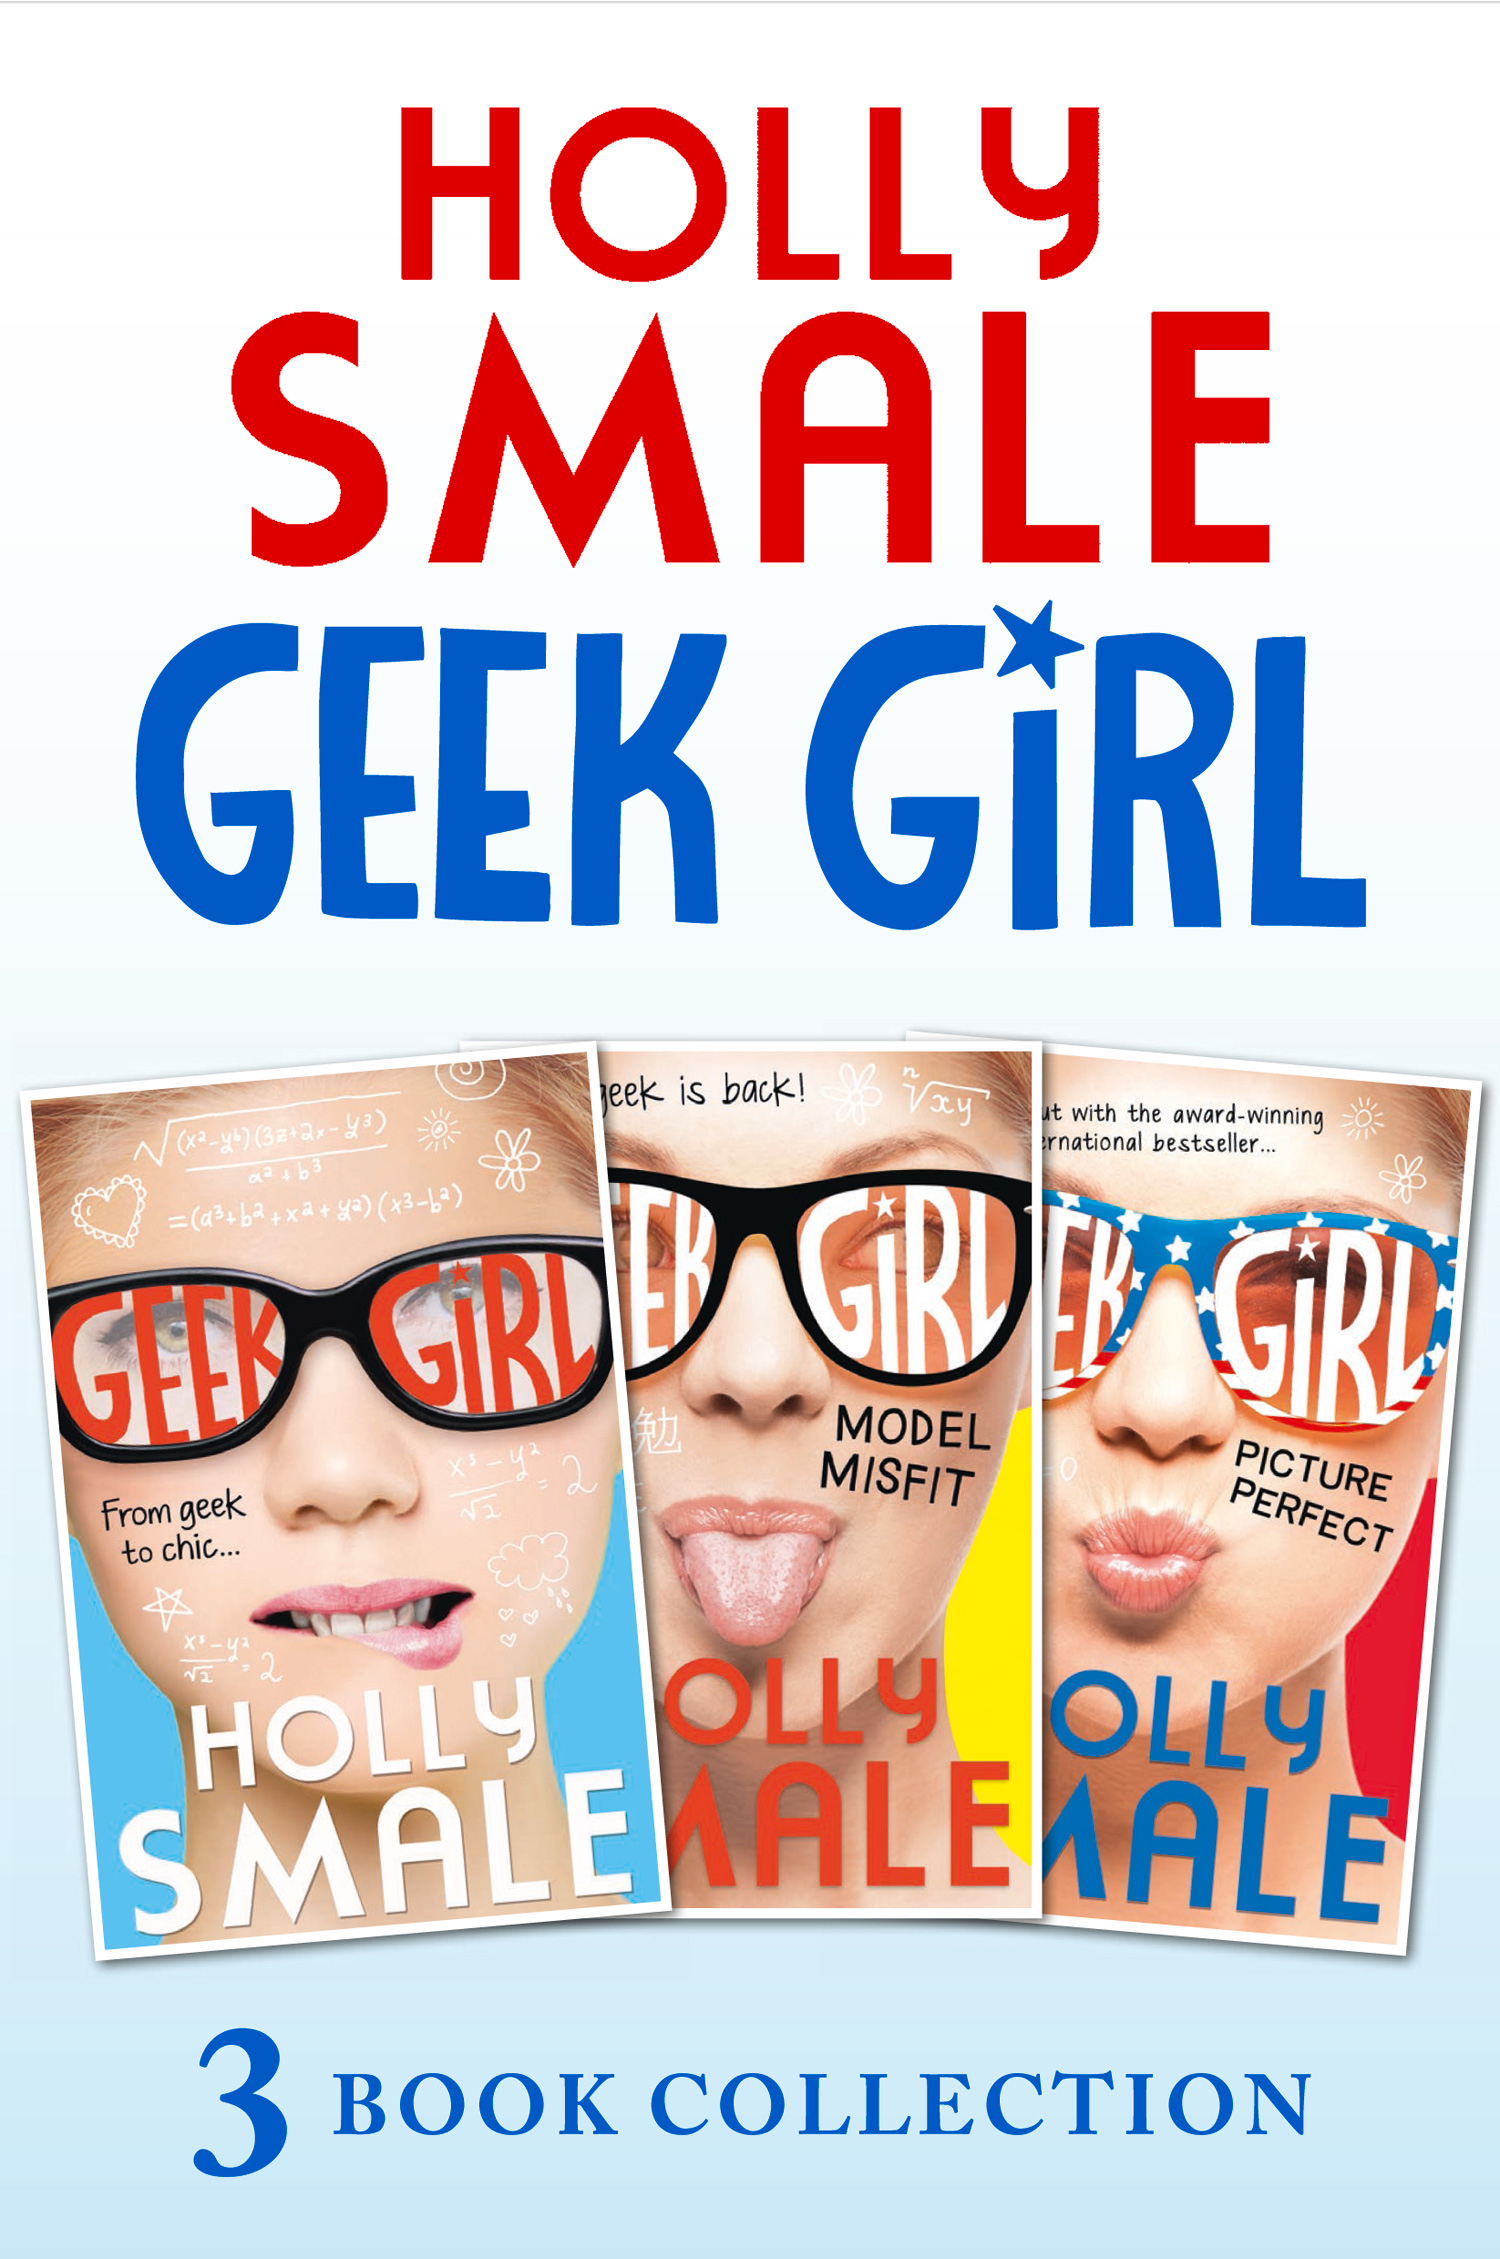 Geek Girl books 1-3